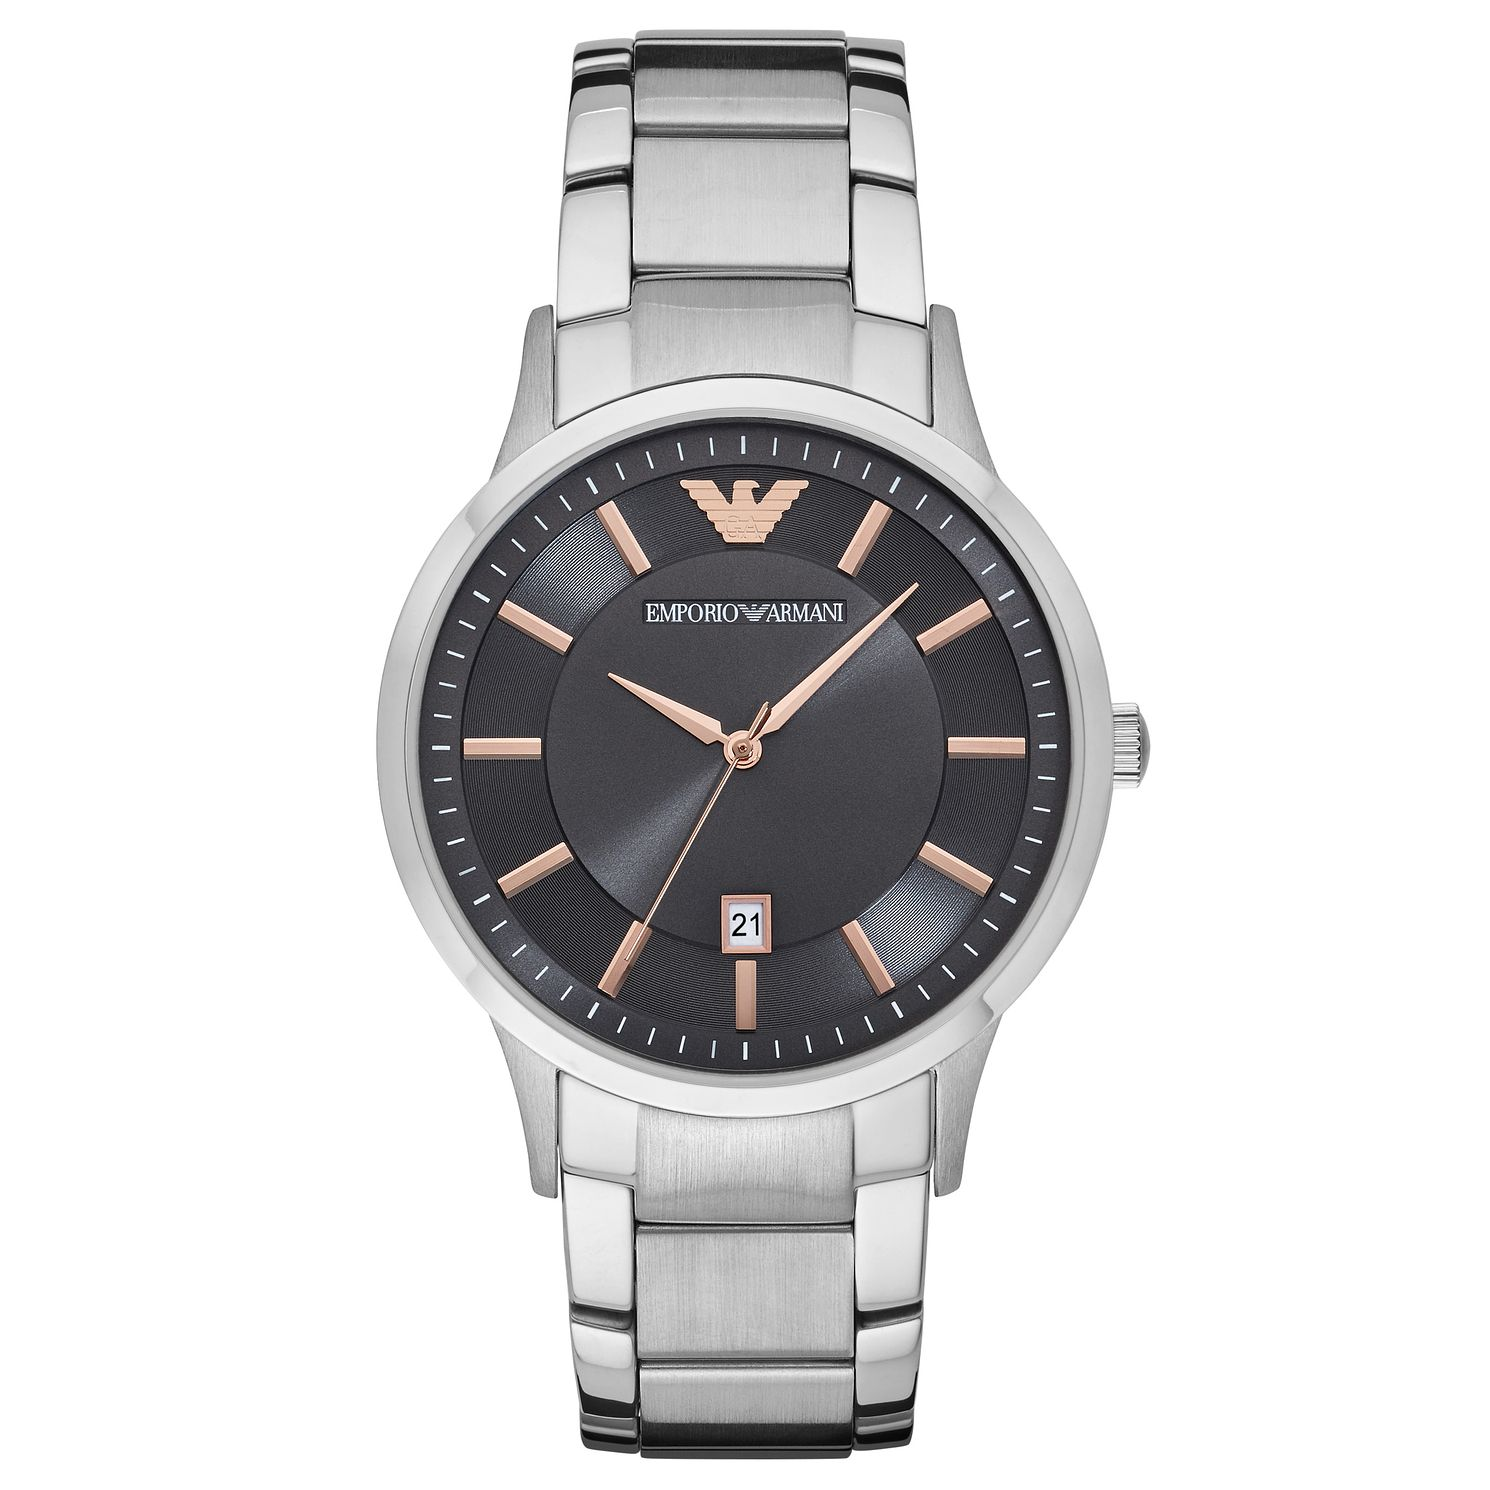 Emporio Armani Men's Stainless Steel Bracelet Watch - Product number 9799052